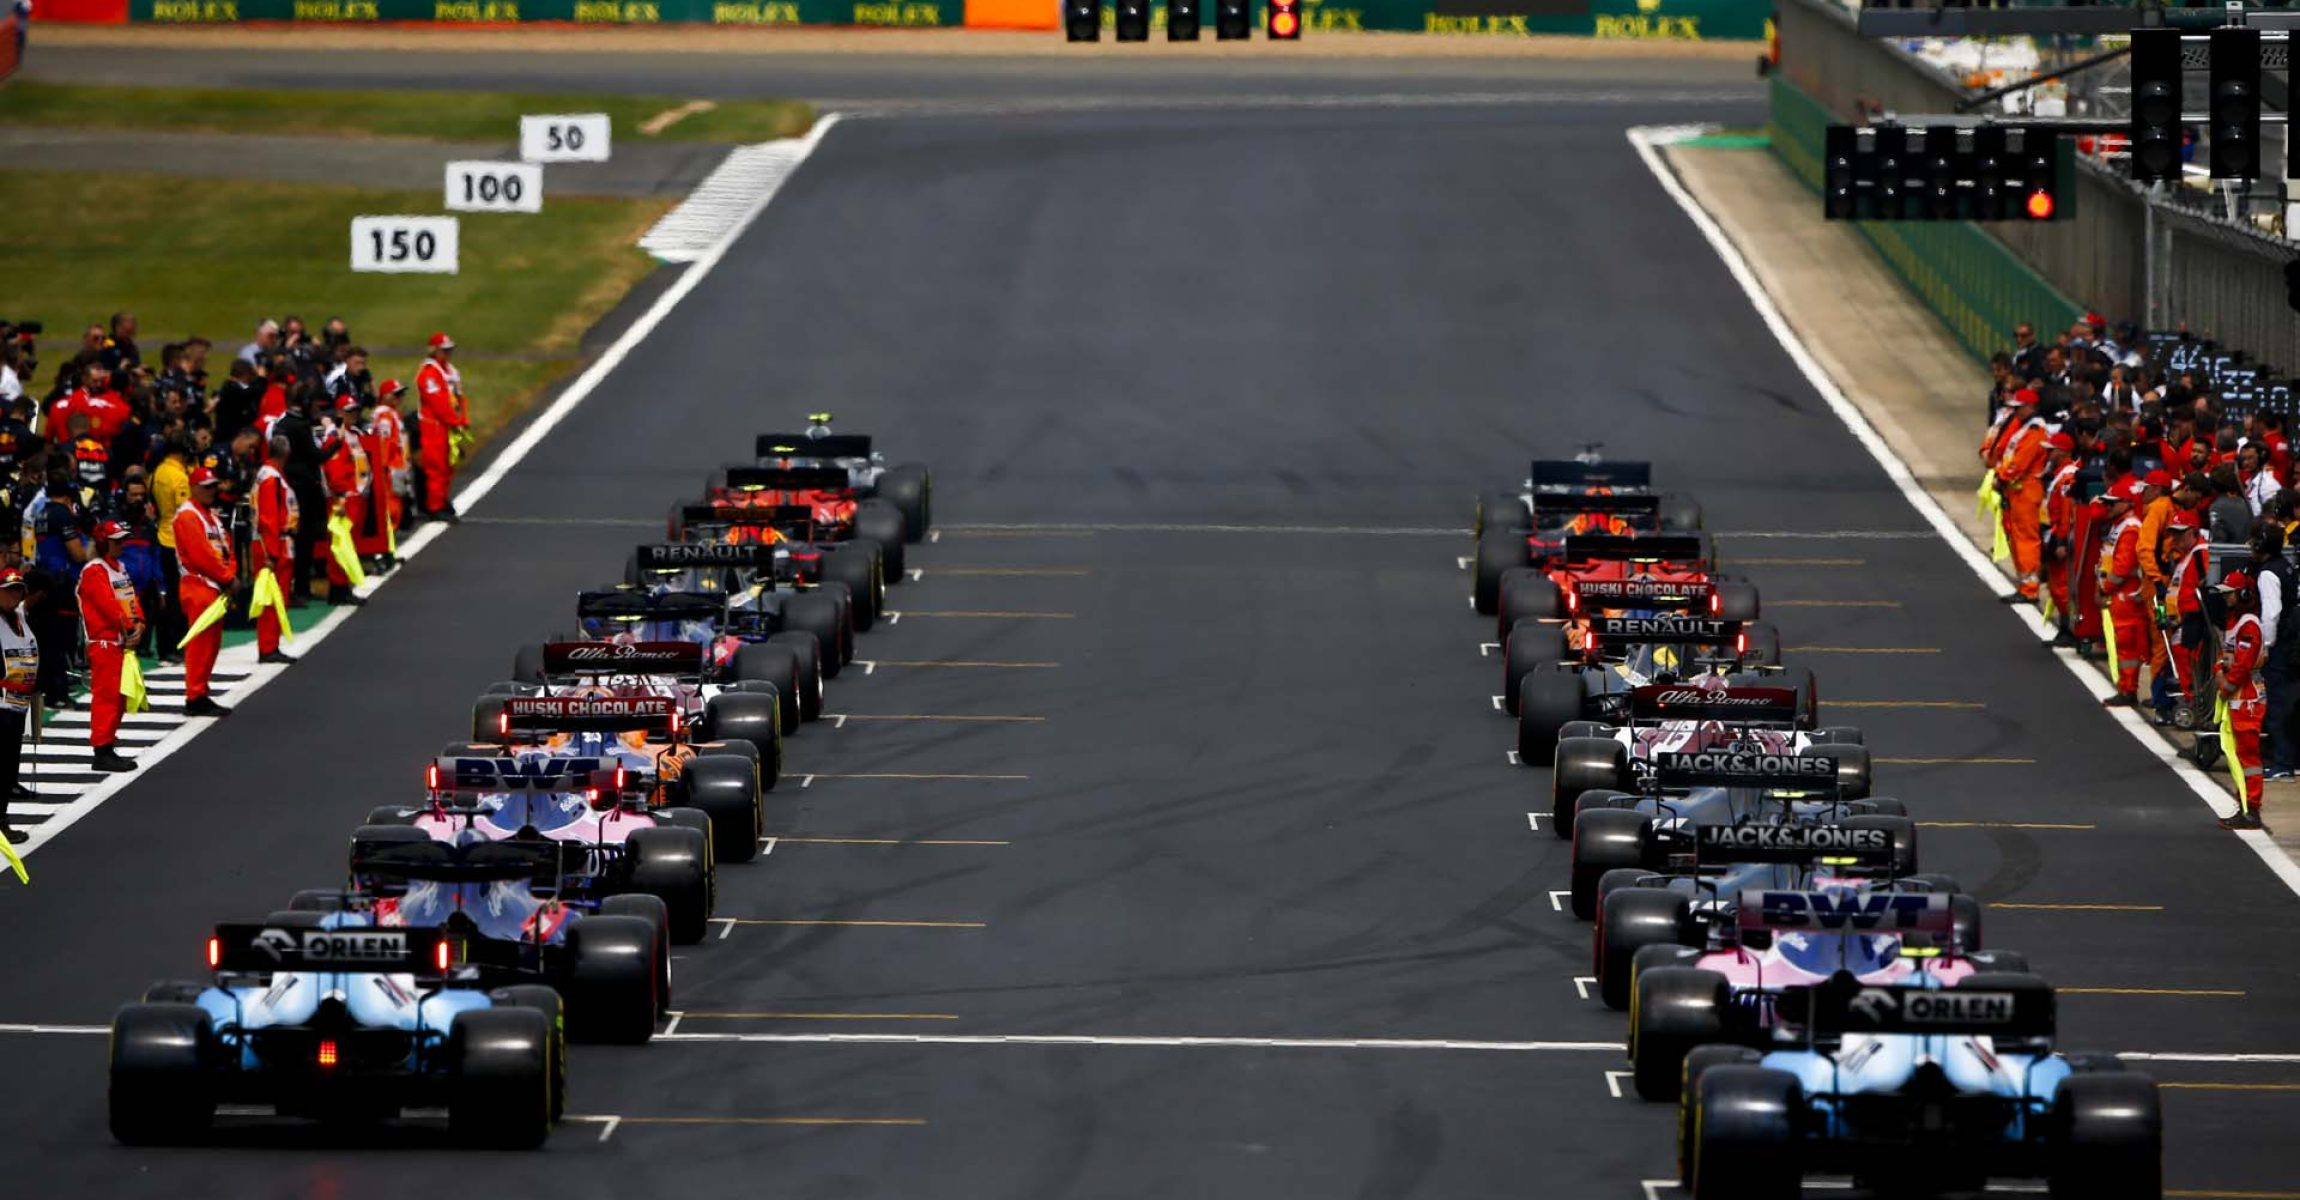 SILVERSTONE, UNITED KINGDOM - JULY 14: Rear of the grid at the start of the formation lap during the British GP at Silverstone on July 14, 2019 in Silverstone, United Kingdom. (Photo by Andy Hone / LAT Images)